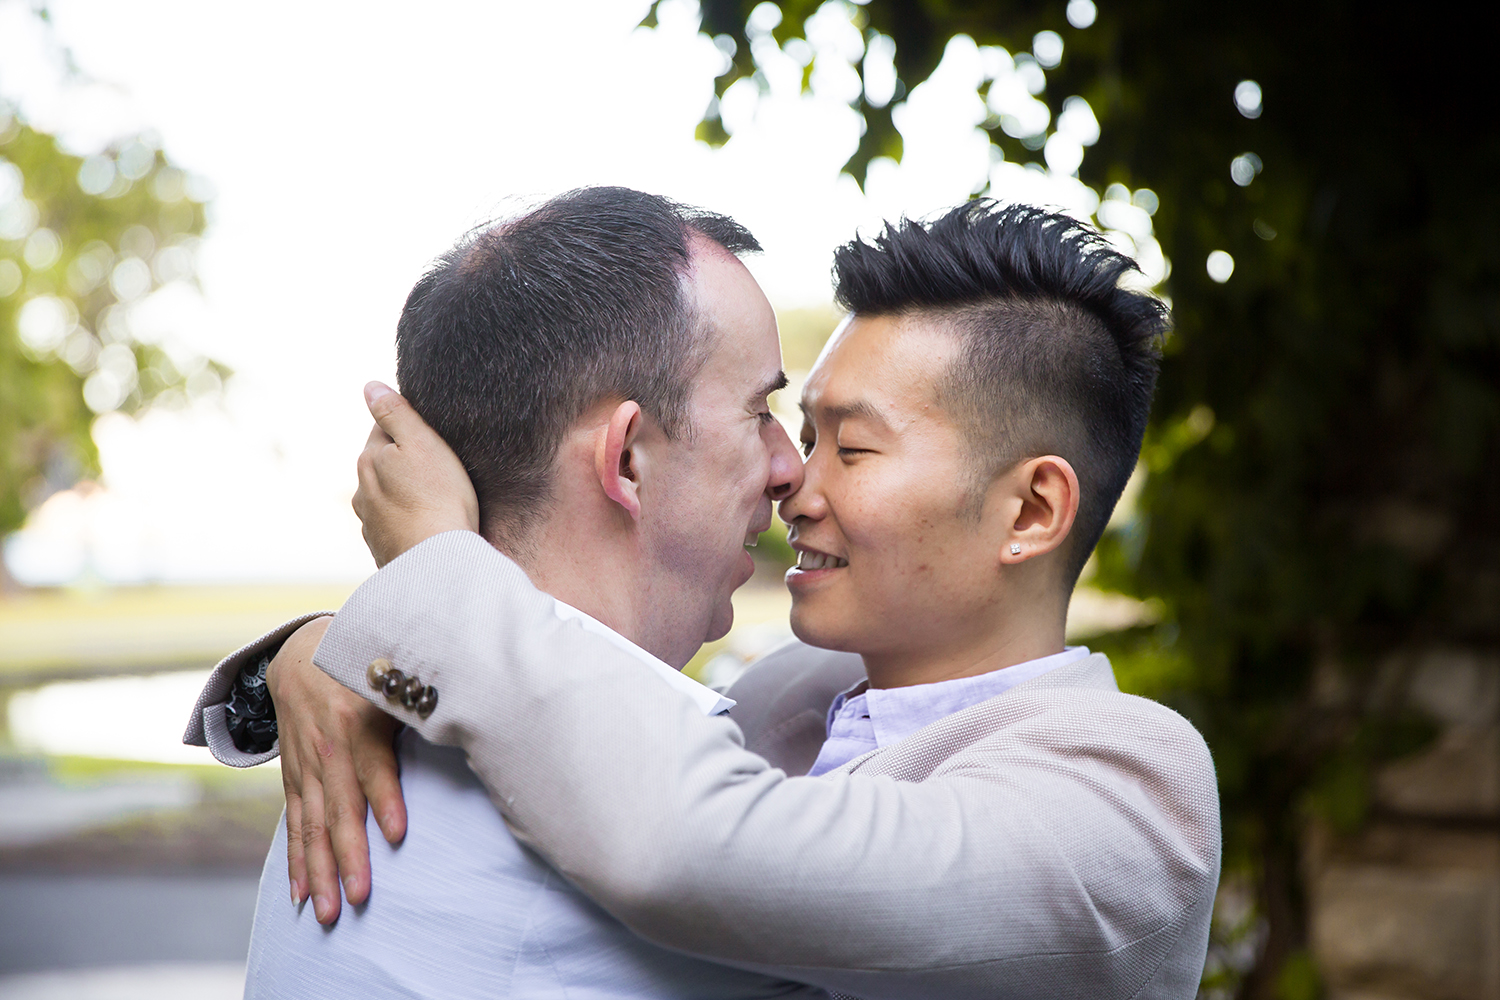 Sydney Gay Wedding Photographer - Jennifer Lam Photography (29).jpg